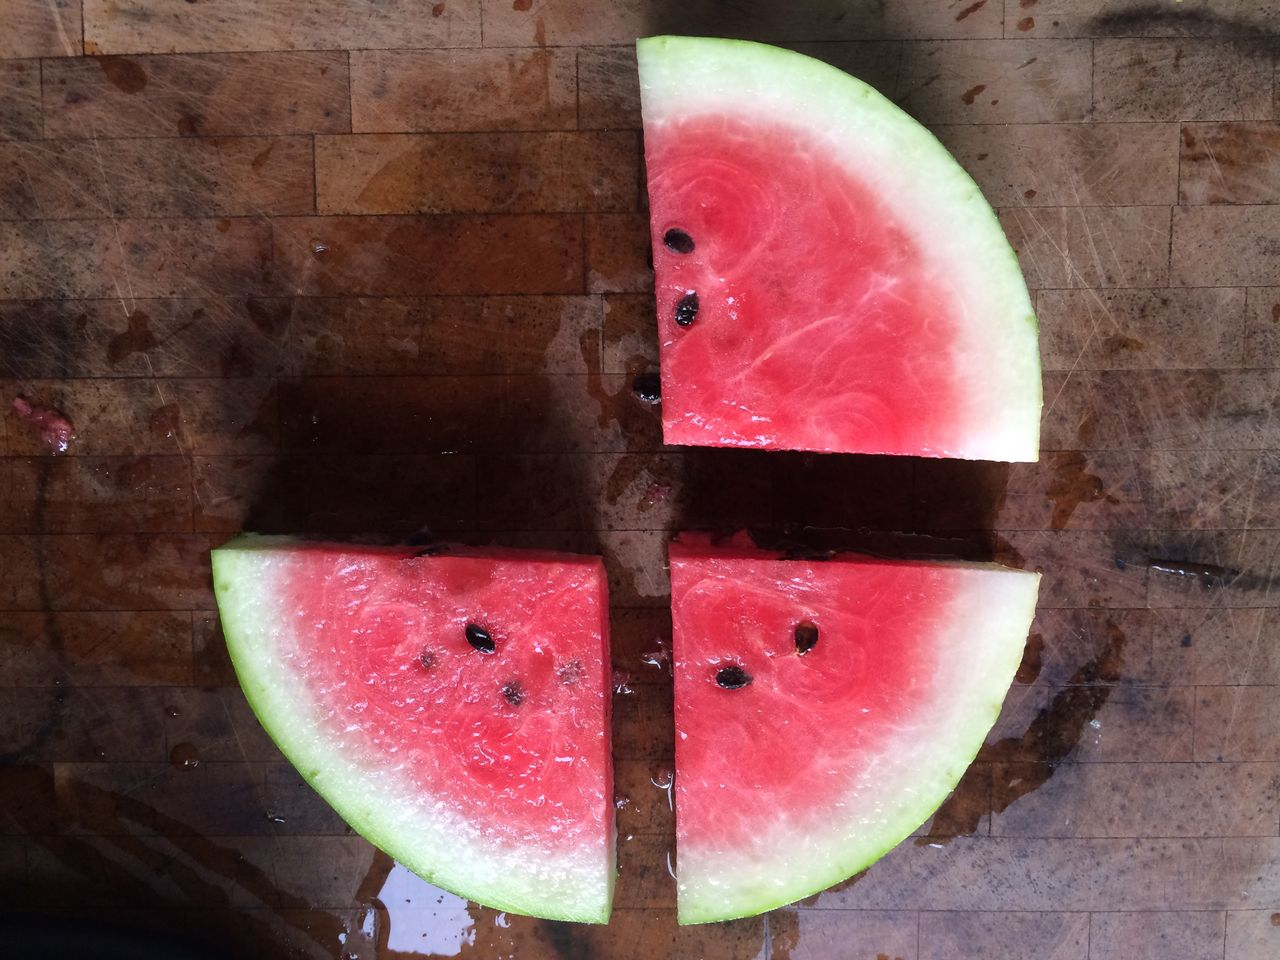 Directly above shot of watermelons slices on cutting board